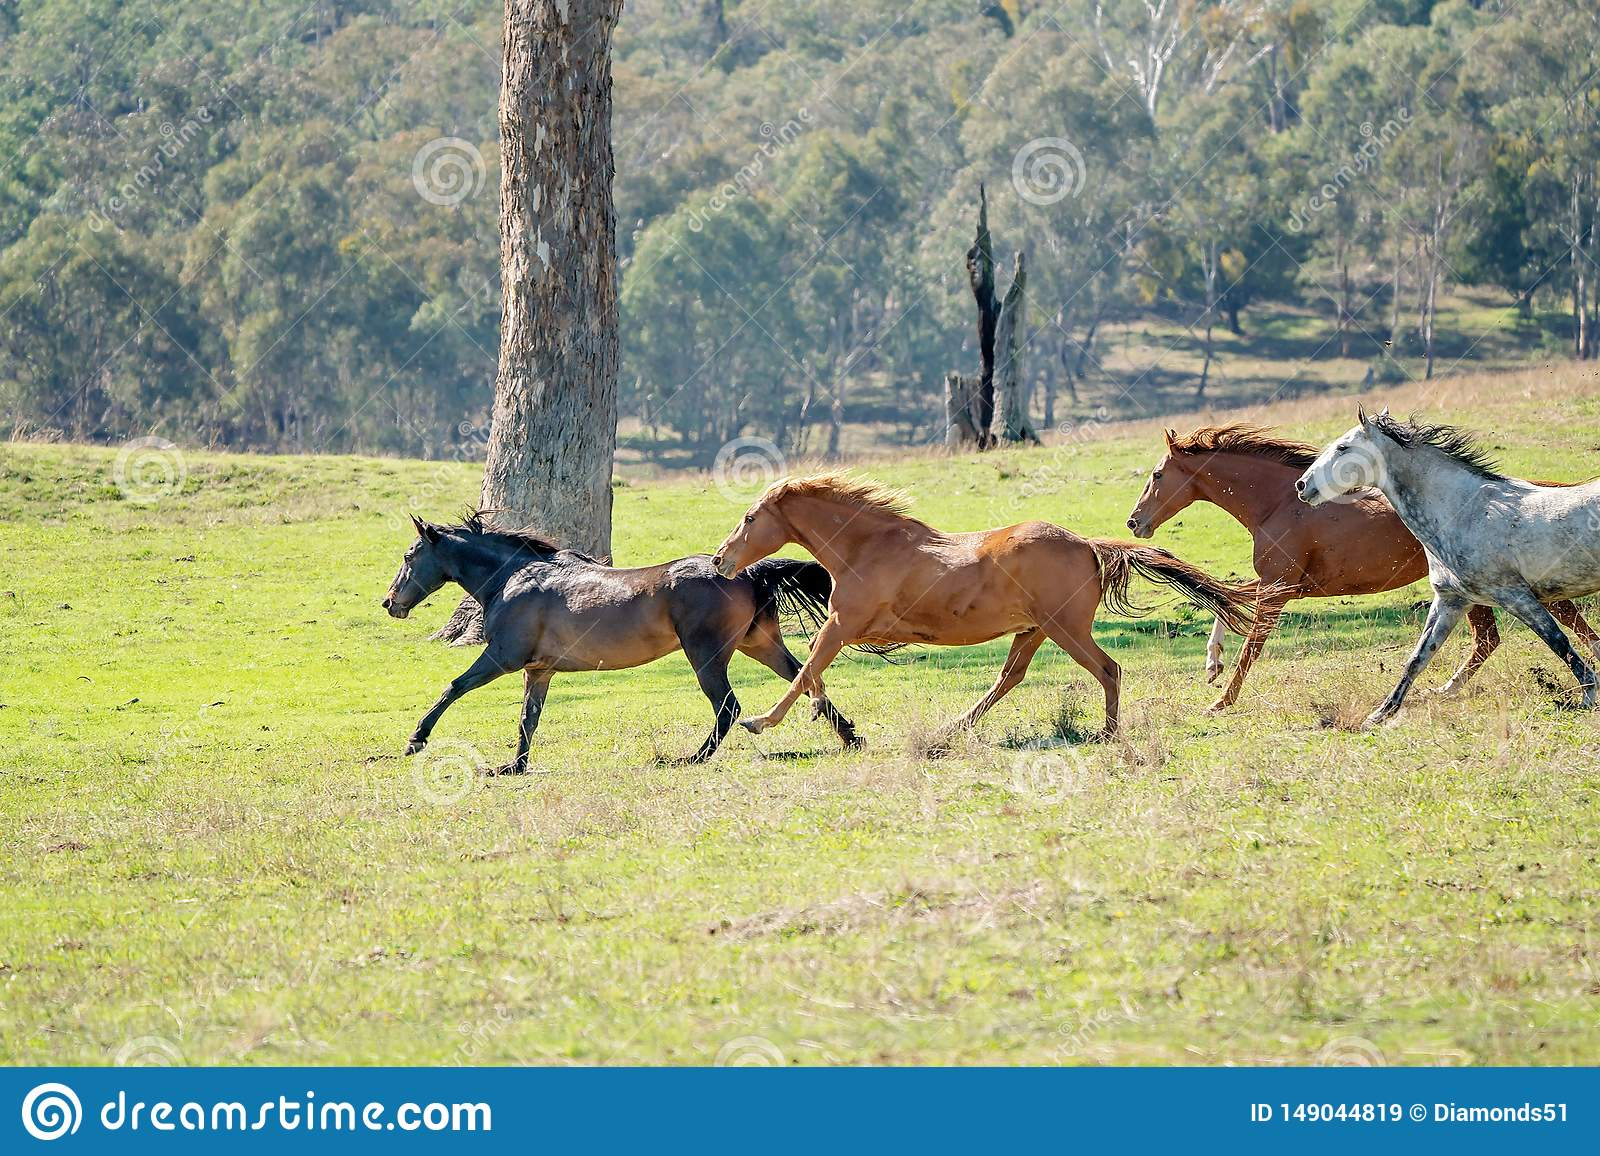 Wild Horses Running Across The Landscape Stock Image Image Of Follow Catch 149044819